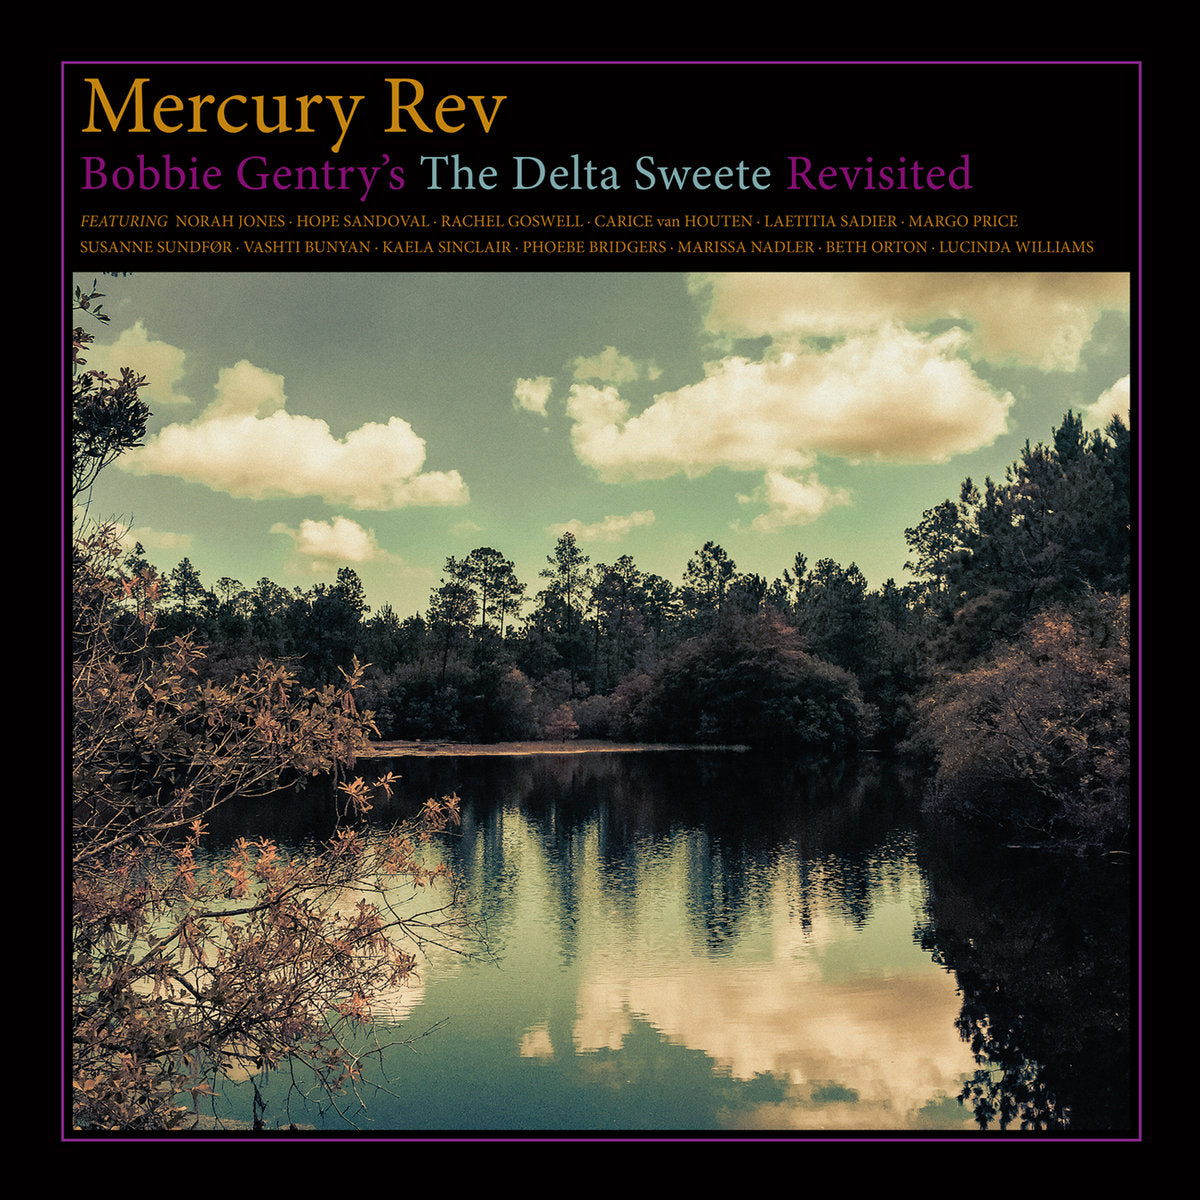 Mercury Rev - Snowflake Midnight (Deluxe Expanded Edition) (Cherry Red)